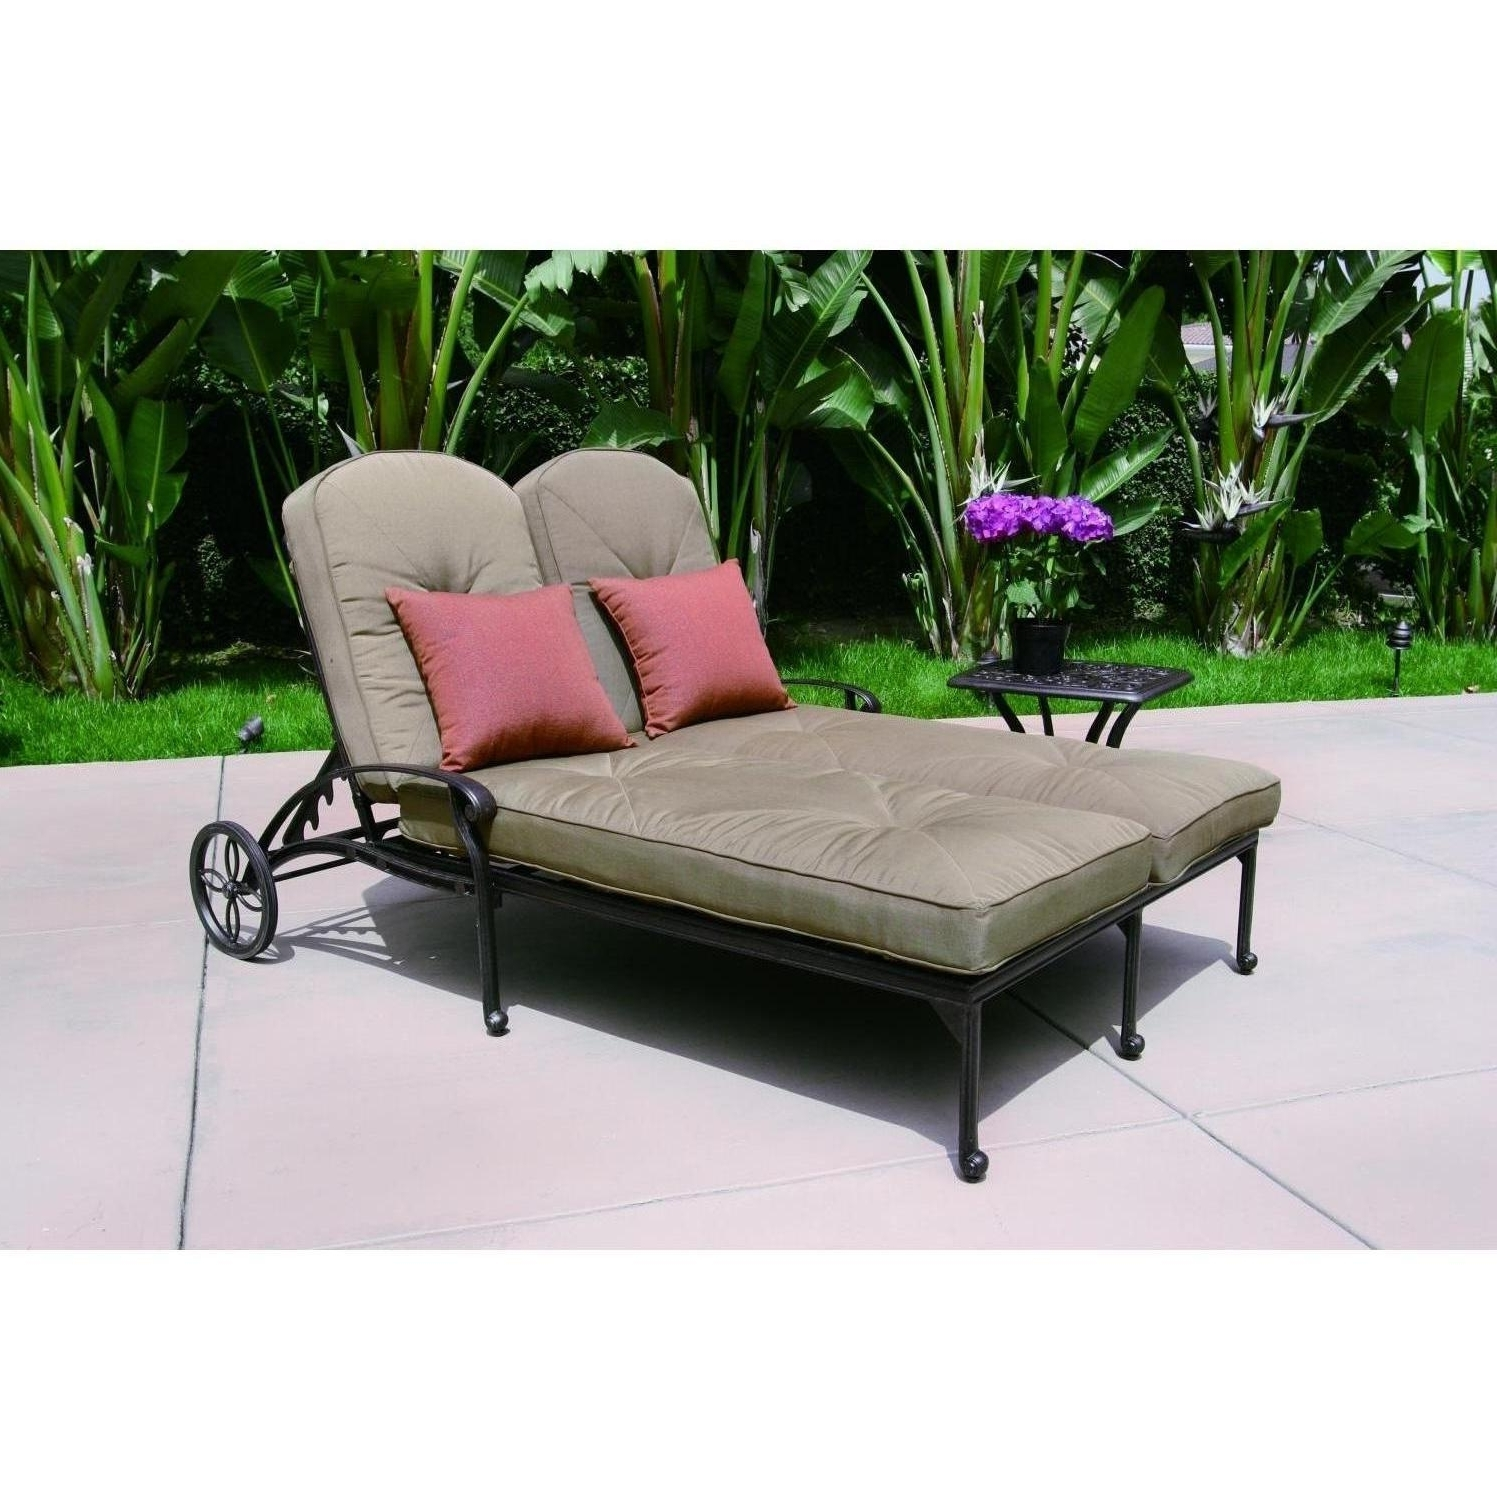 2018 Darlee Elisabeth 2 Piece Cast Aluminum Patio Double Chaise Lounge Within Patio Double Chaise Lounges (View 3 of 15)